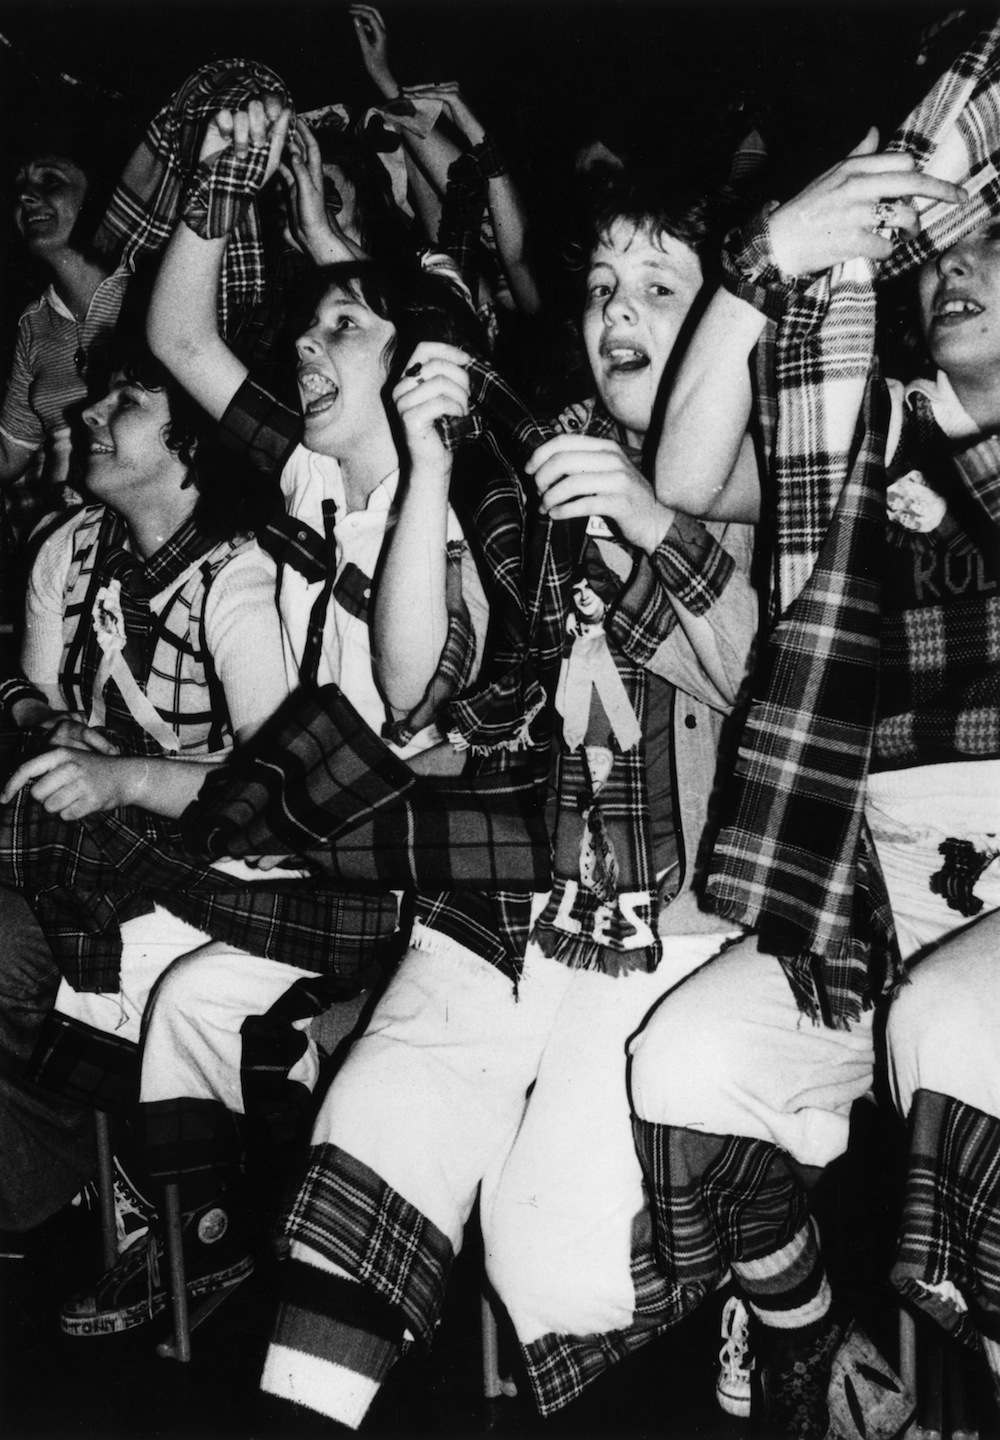 22nd May 1975:  Ecstatic tartan-clad Bay City Roller fans at a concert in Swansea, where 16 of them had to be taken to hospital  (Photo by Graham Wood/Evening Standard/Getty Images)